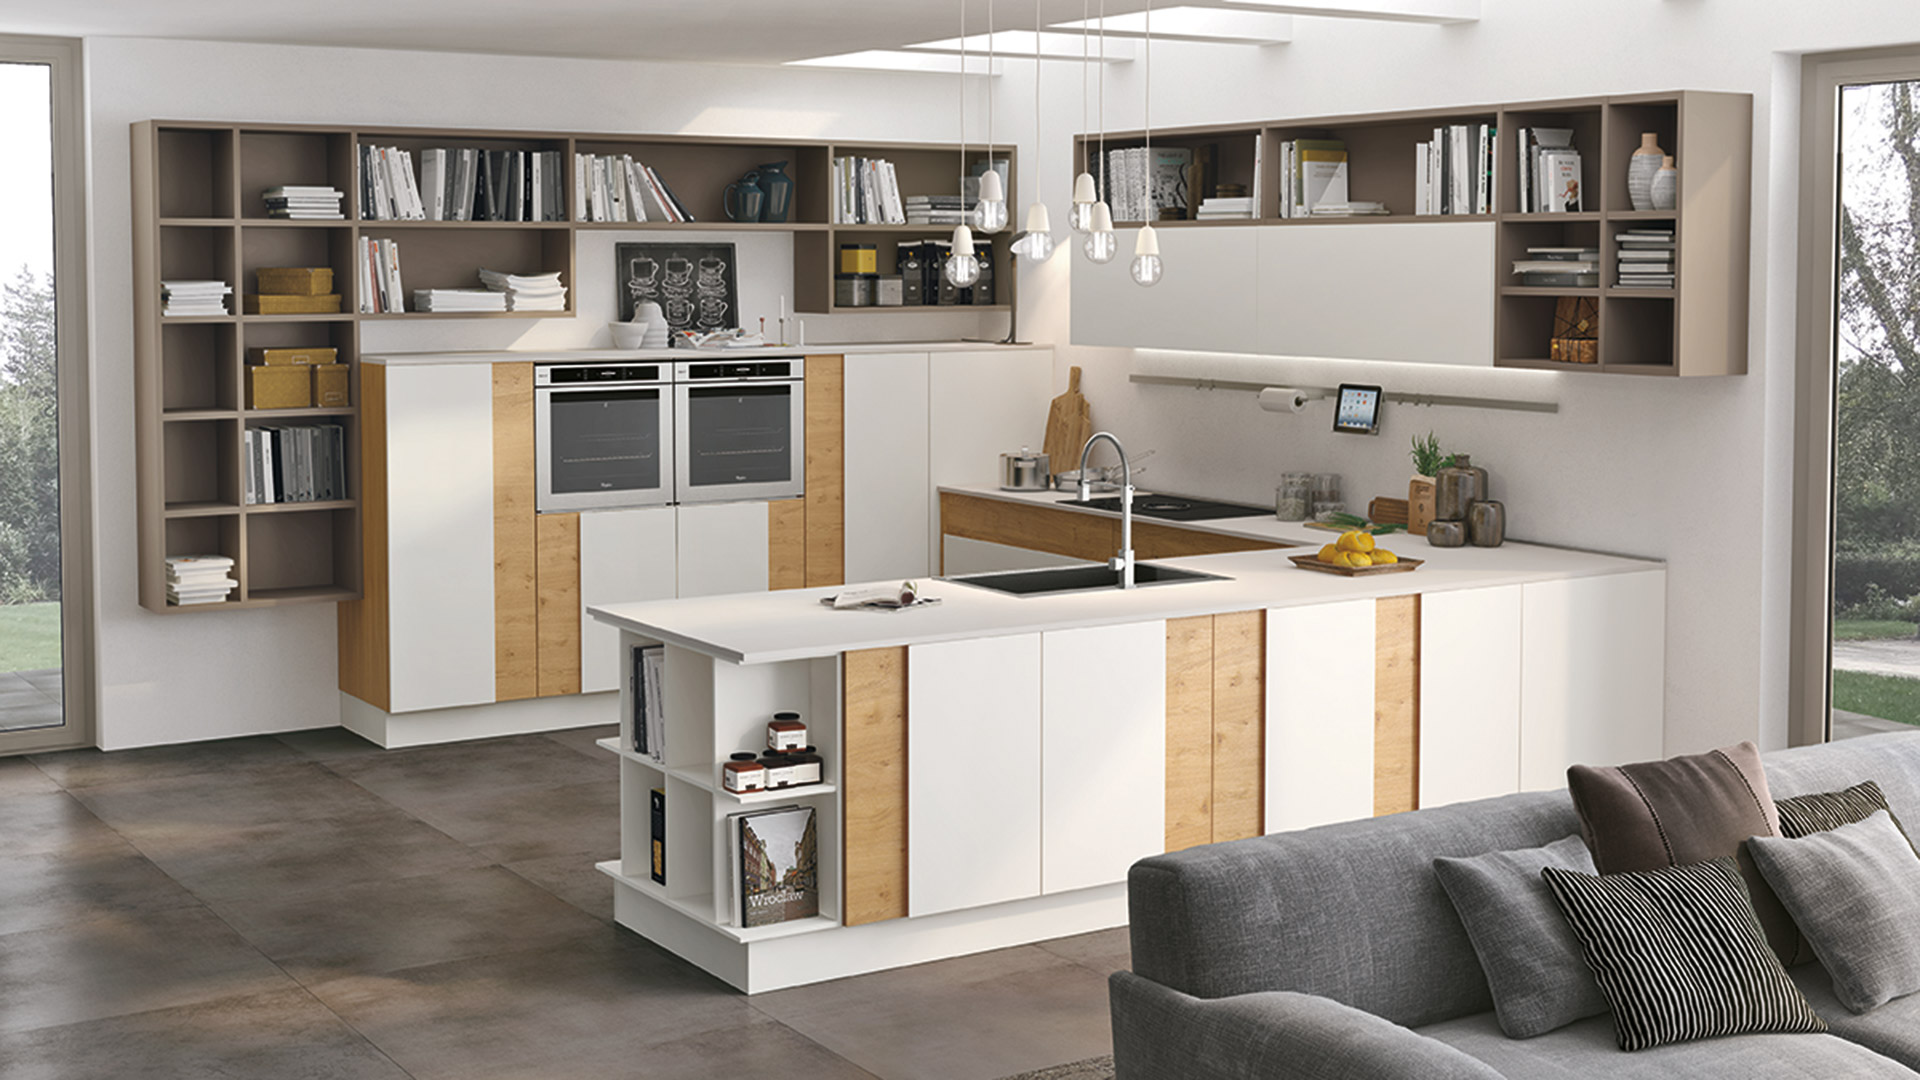 Product data sheet - Modern Kitchens - Lube Official Website